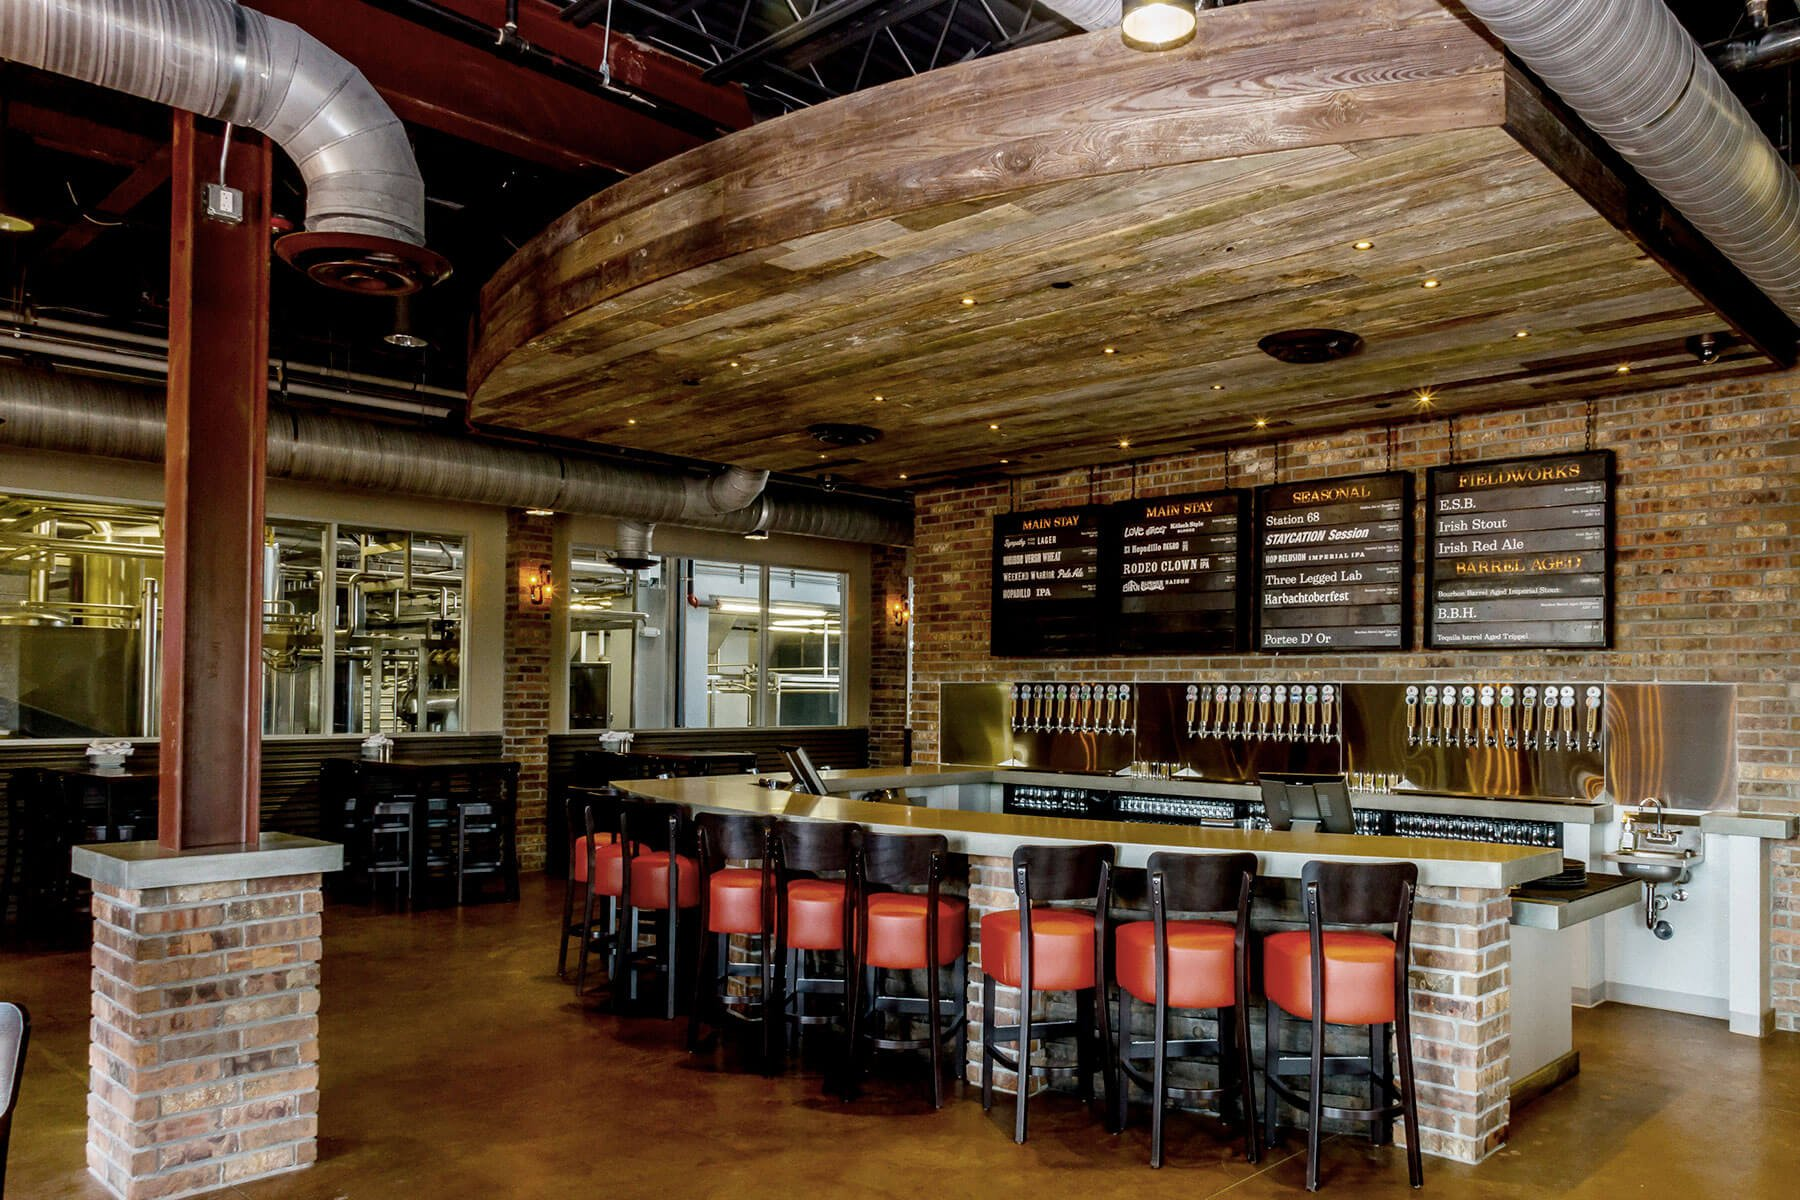 Inside the restaurant and taproom at Karbach Brewing Co. in Houston, Texas